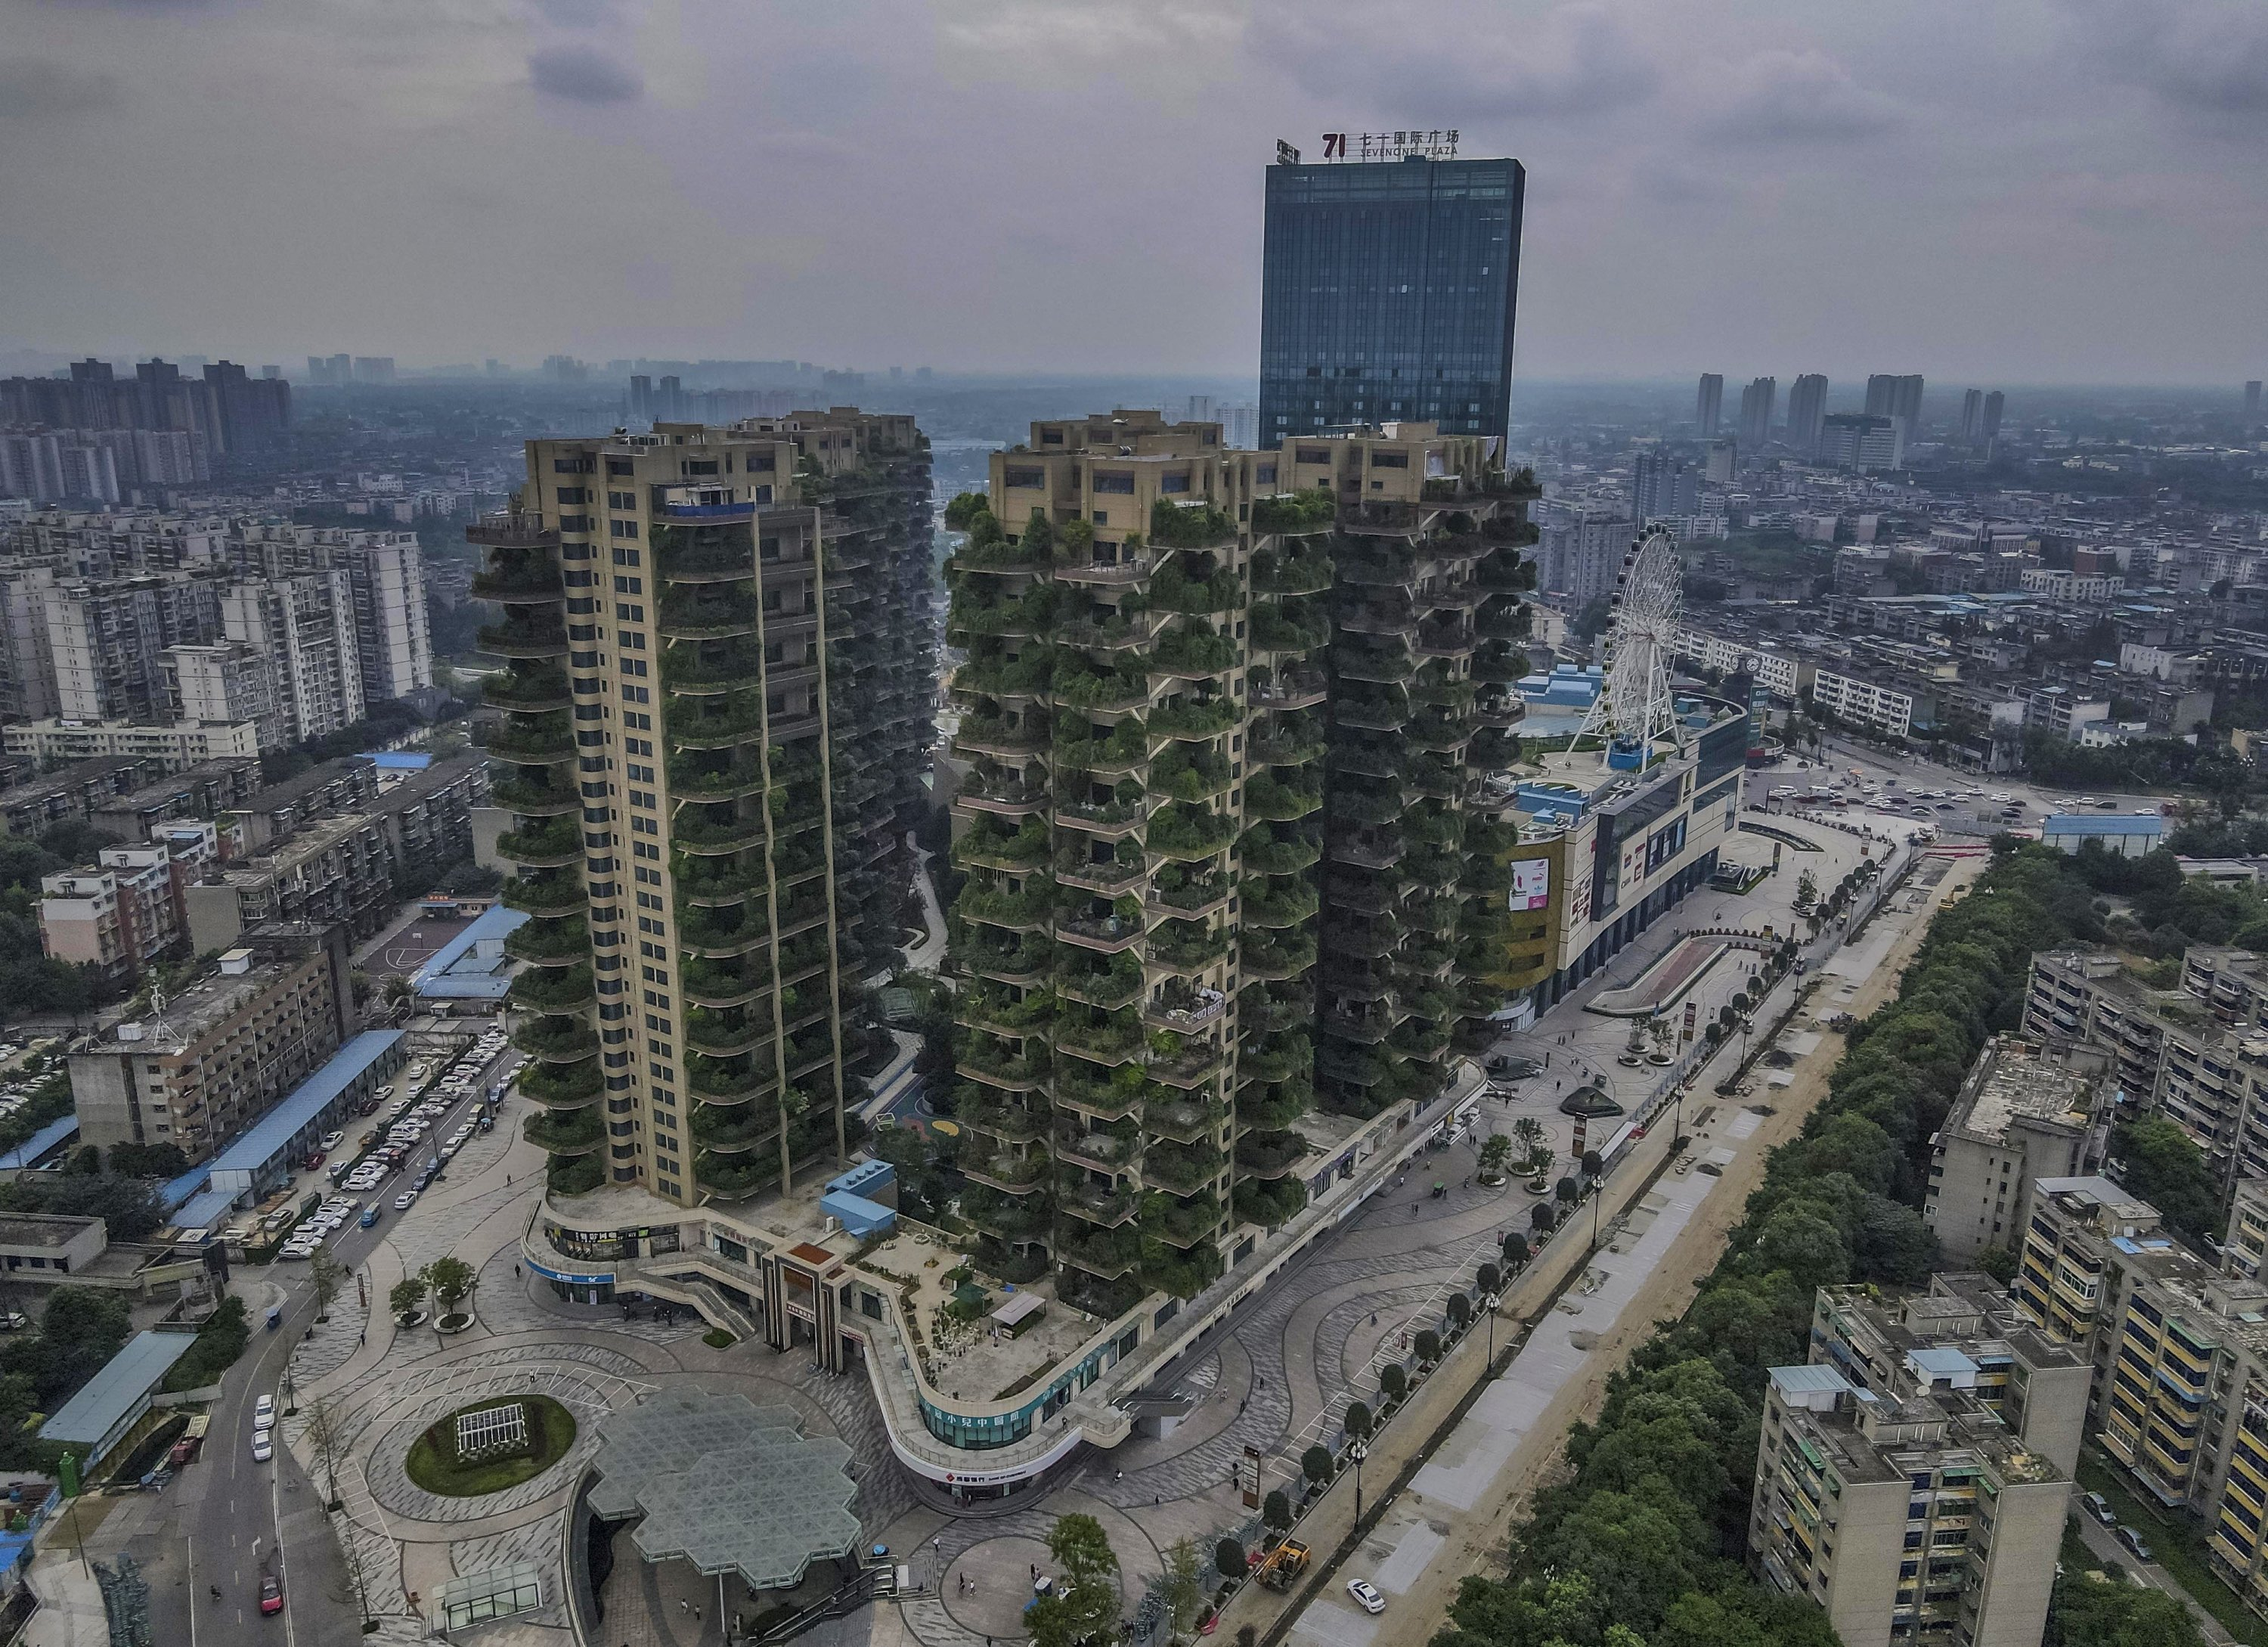 A photo taken with a drone shows an aerial view of Qiyi City Forest Garden residential buildings complex in Chengdu, China, Sept. 15, 2020. (EPA Photo)